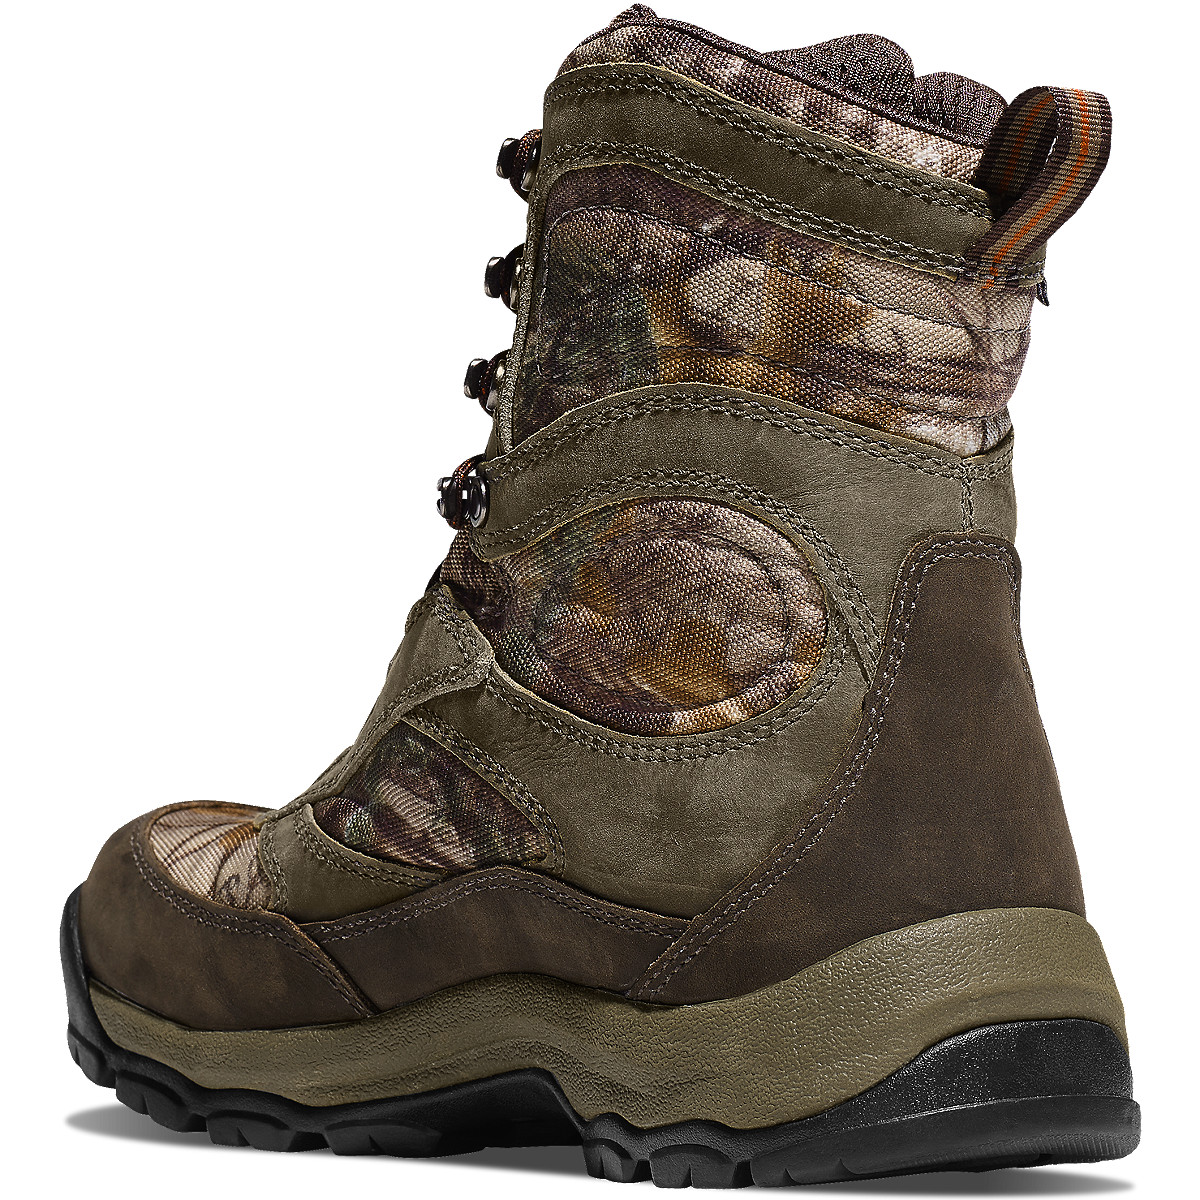 Discount Danner Boots - Cr Boot